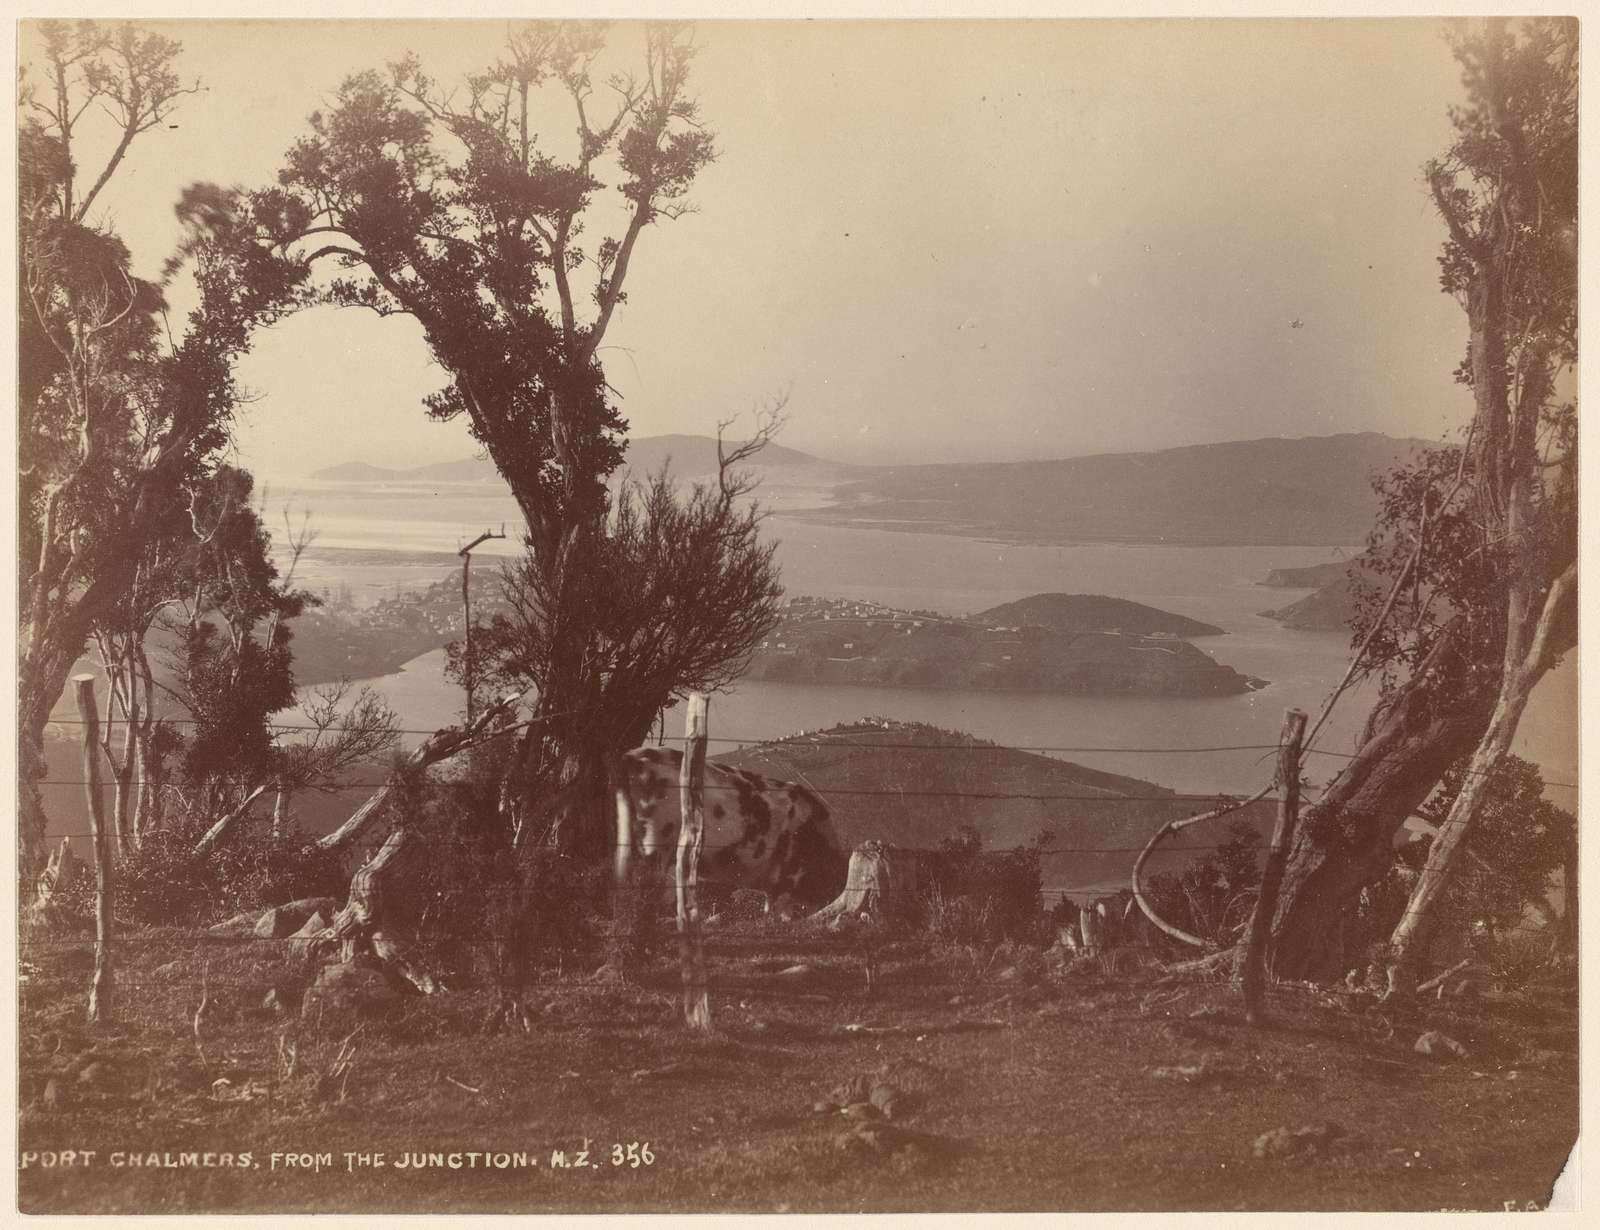 Port Chalmers, from the Junction. N. Z.